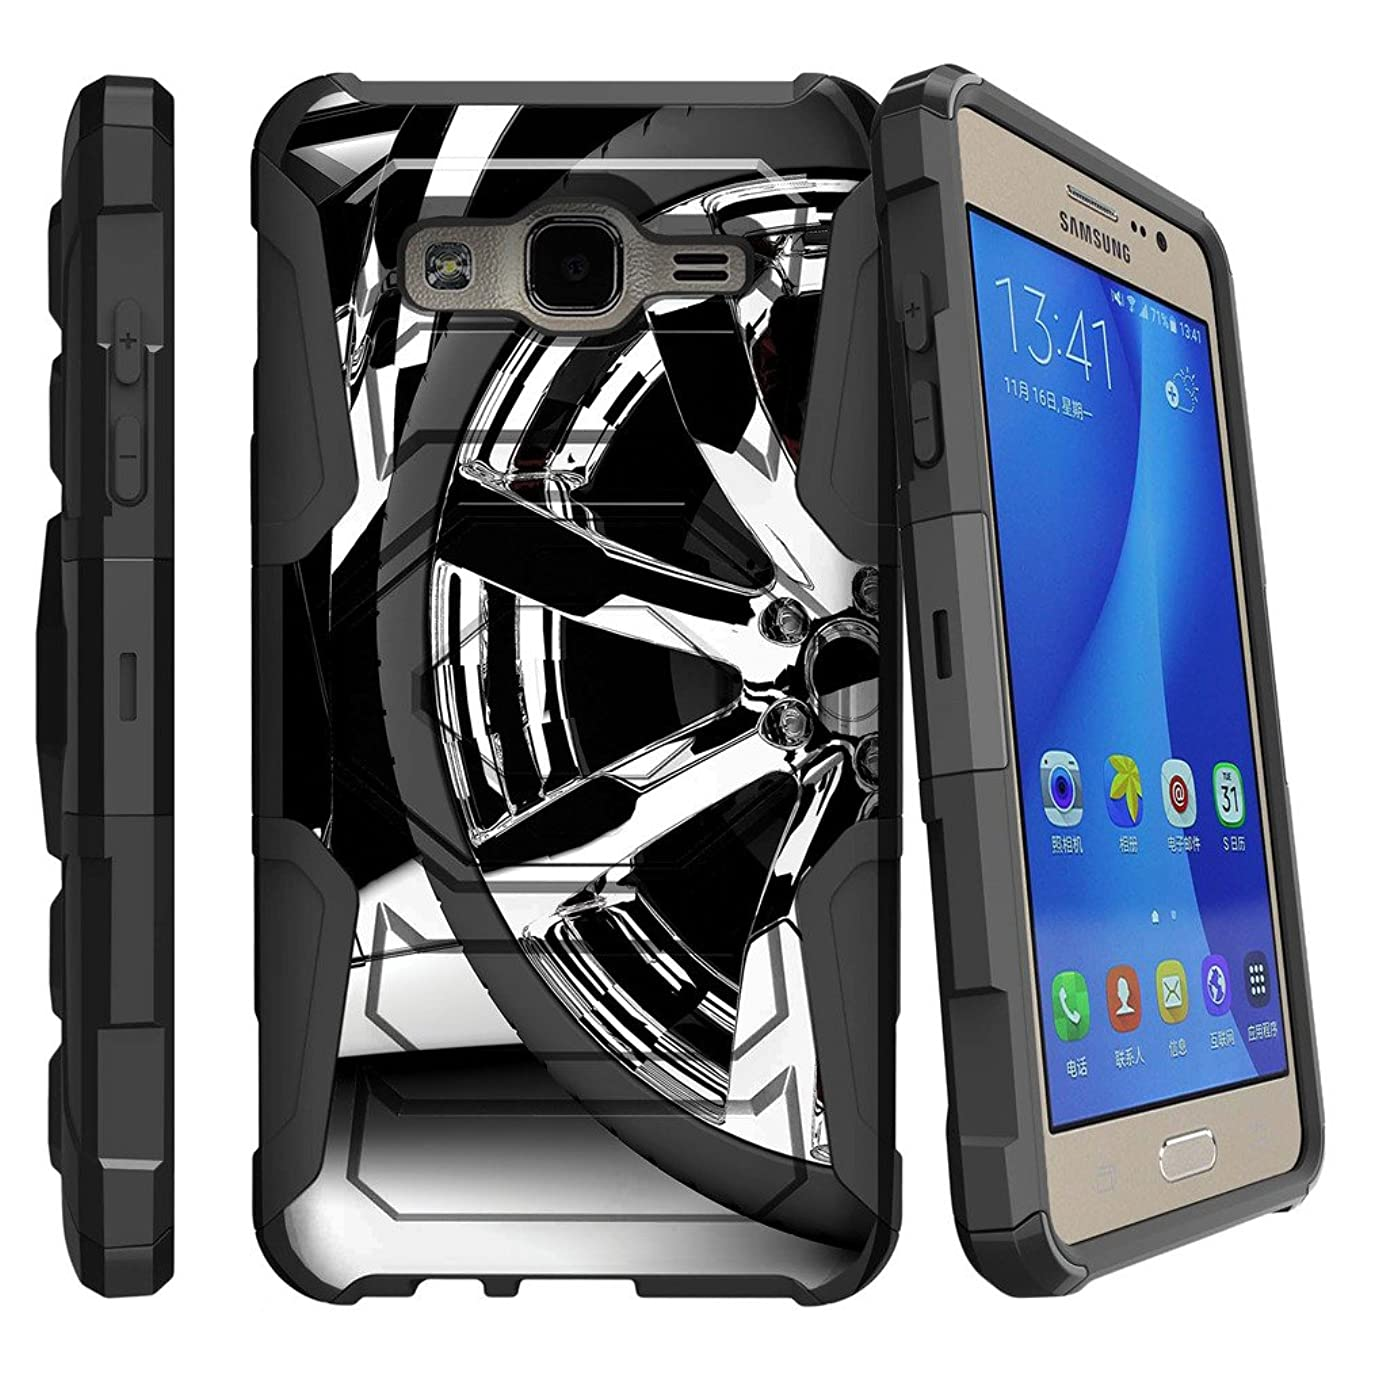 MINITURTLE Case Compatible w/Galaxy On5 Case, Samsung O5 Clip Case, G550 Cover [Armor Reloaded] Shock Rugged Clip Case w/Hard Stand Silver Rim